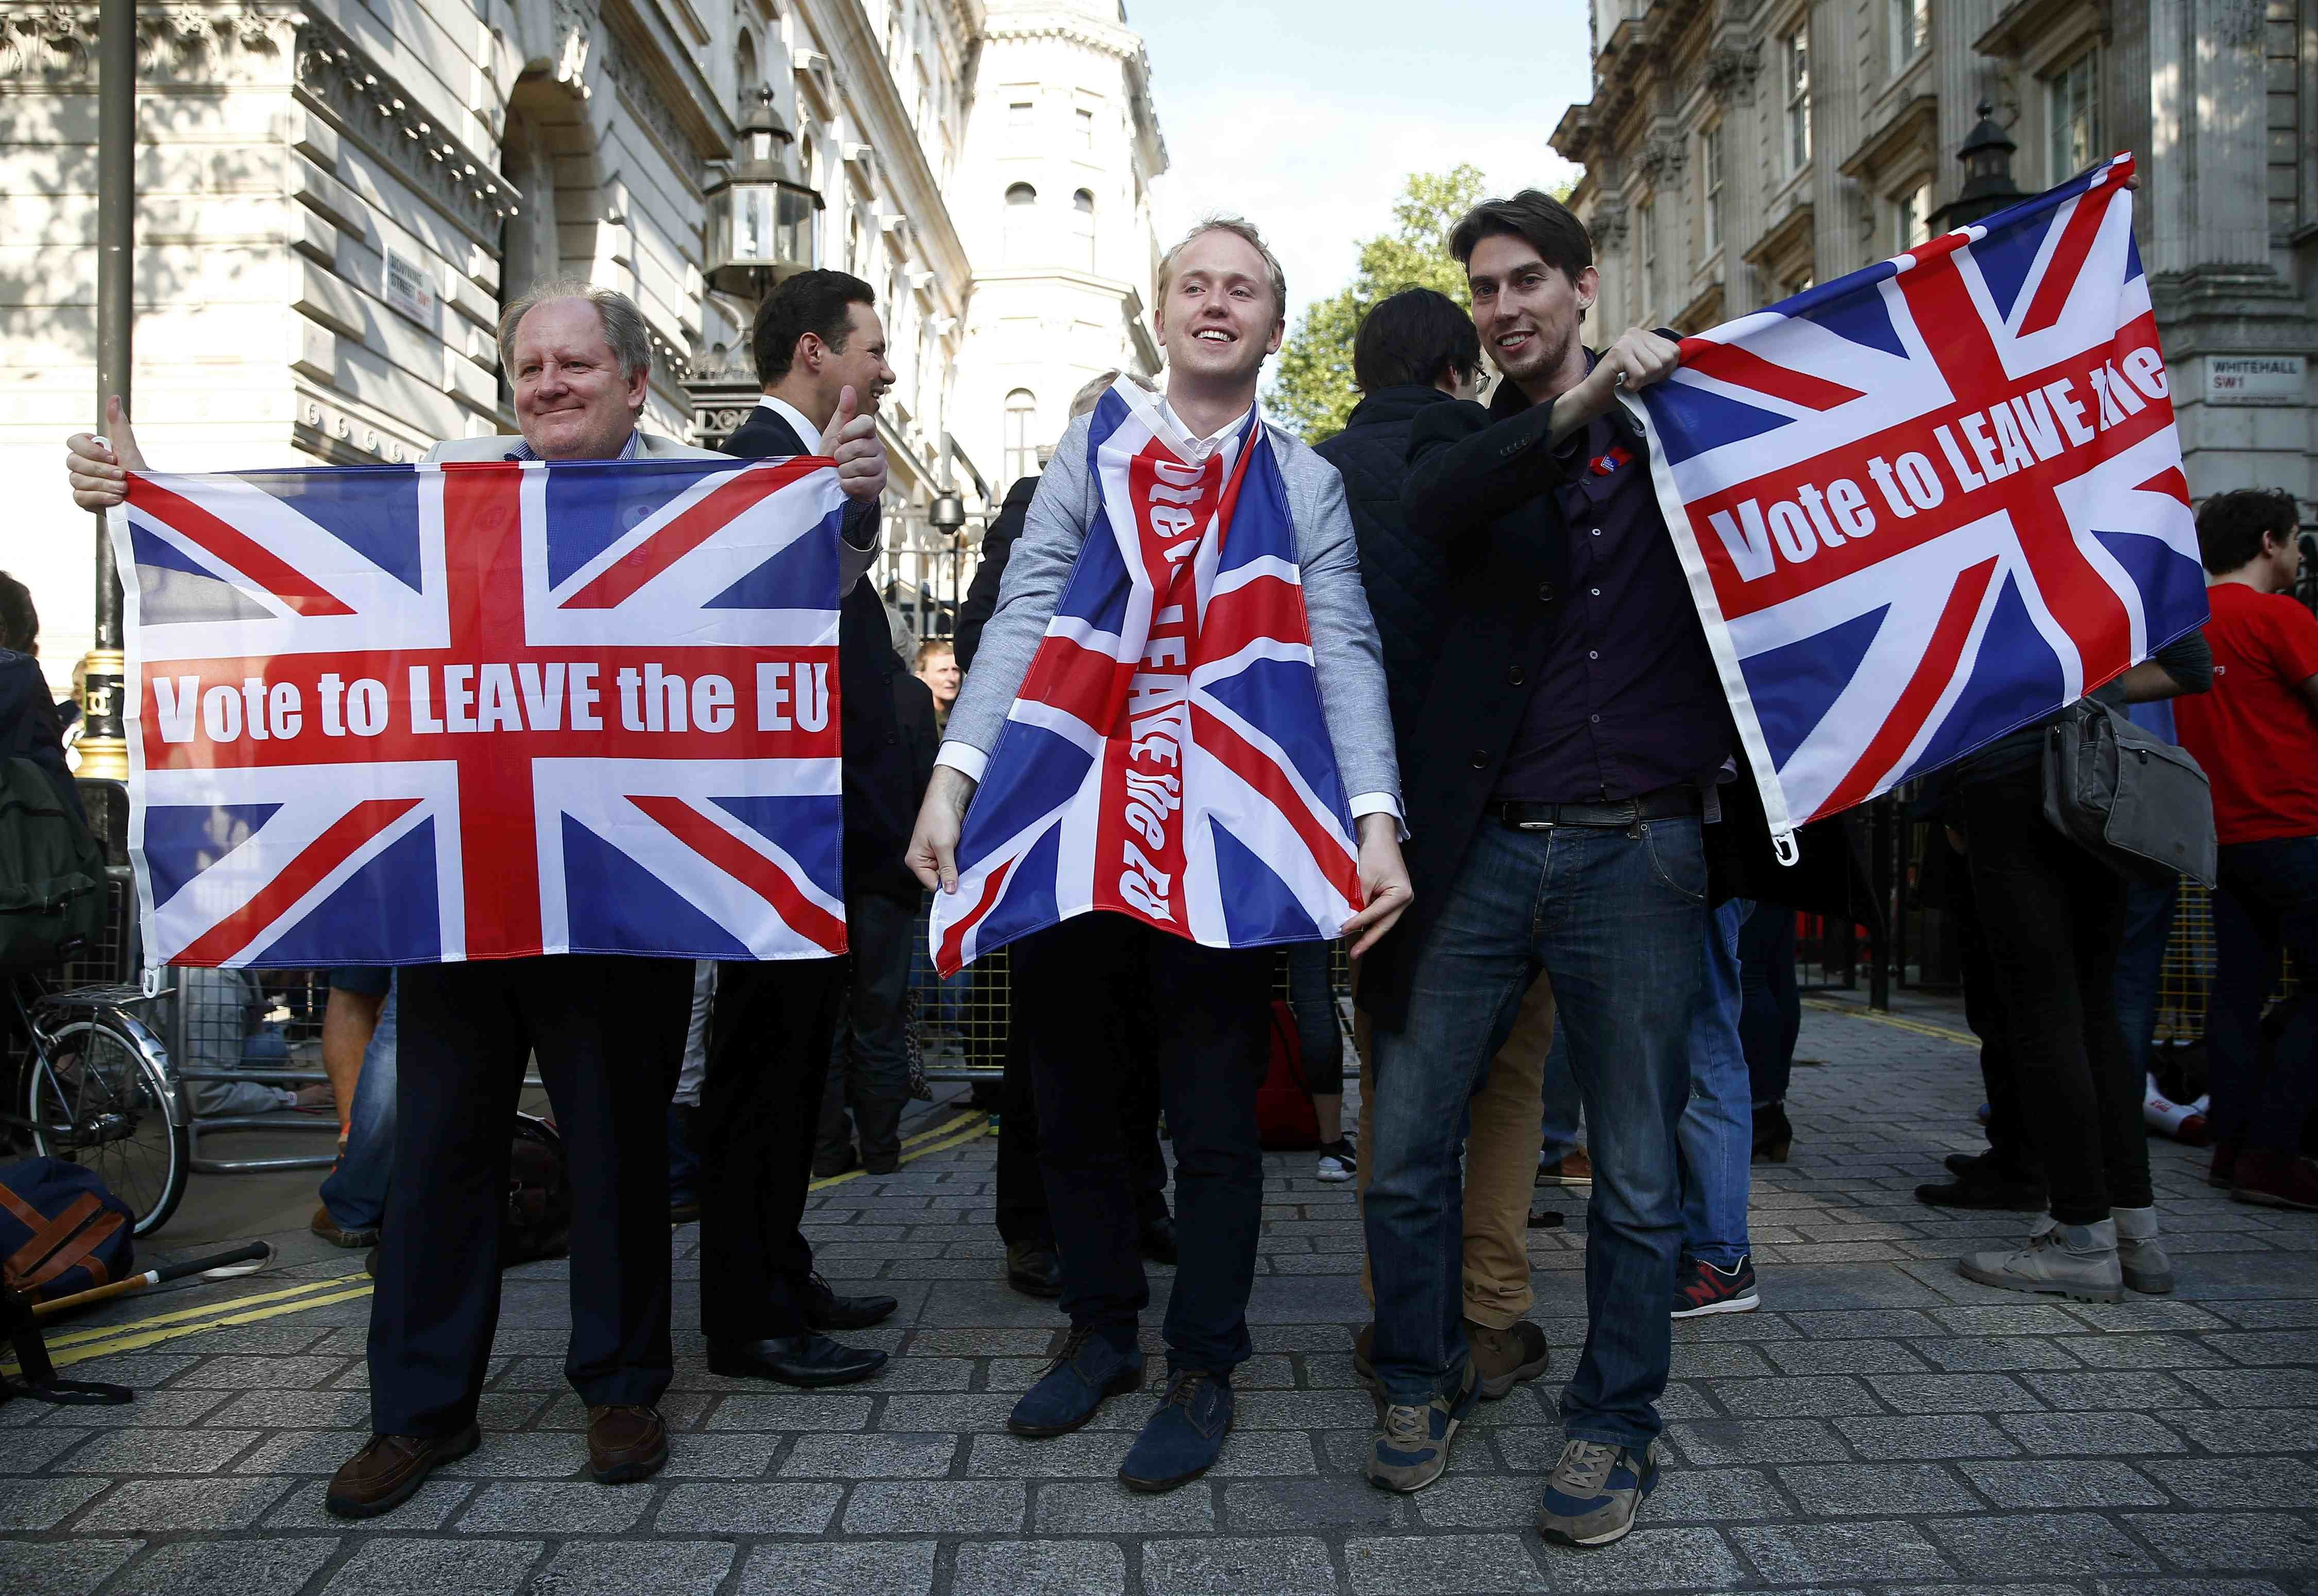 Vote leave supporters wave Union flags, following the result of the EU referendum, outside Downing Street in London on June 24, 2016.